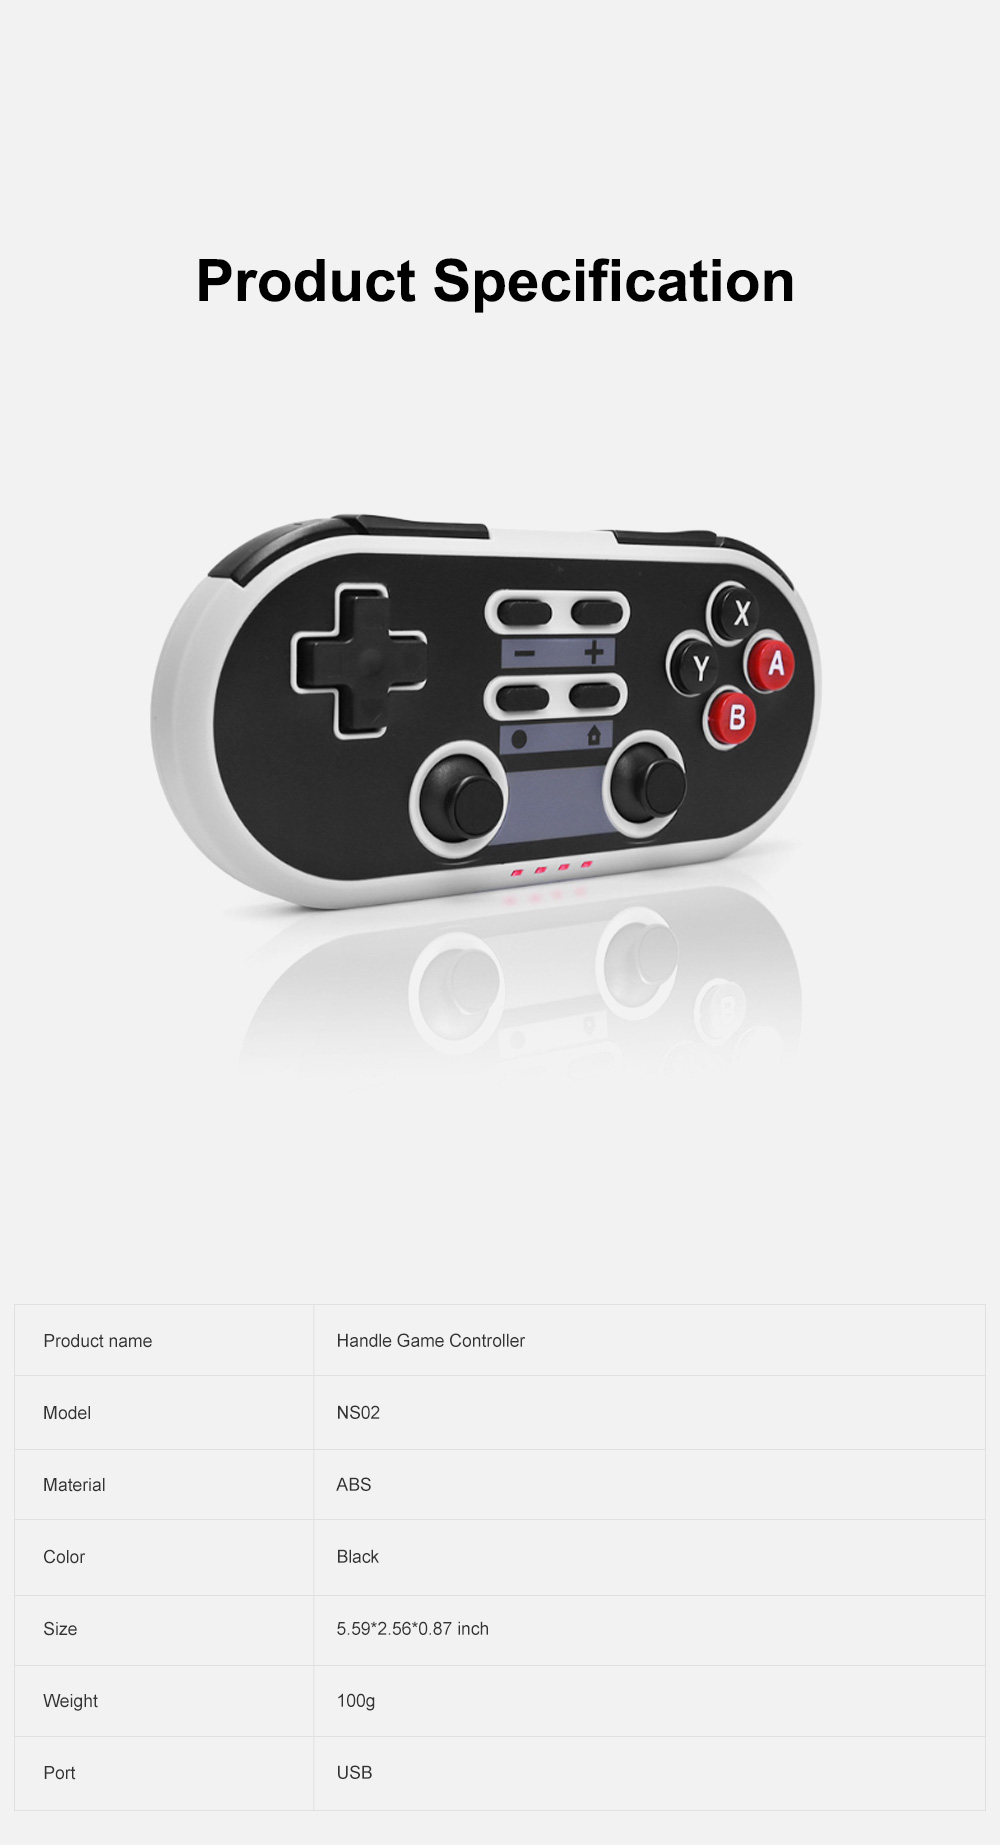 For Switch PS3 Handle Game Controller Mobile Game Connector Retro Game Console with Strong Compatibility and Sensitive Reaction 6